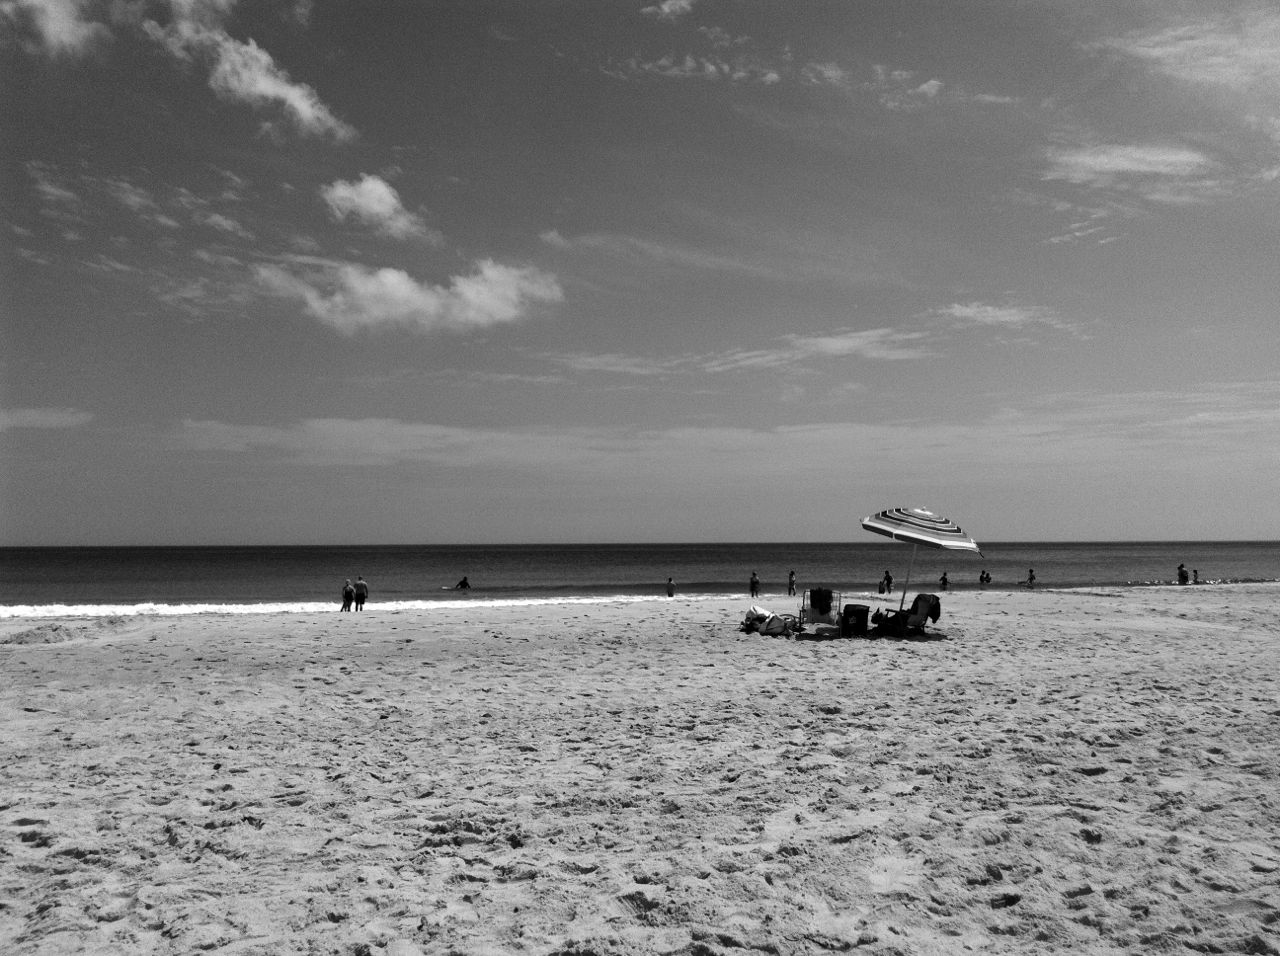 Before the beach completely filled up, and as people were setting up their gear, I snapped a few pictures that felt like another time.